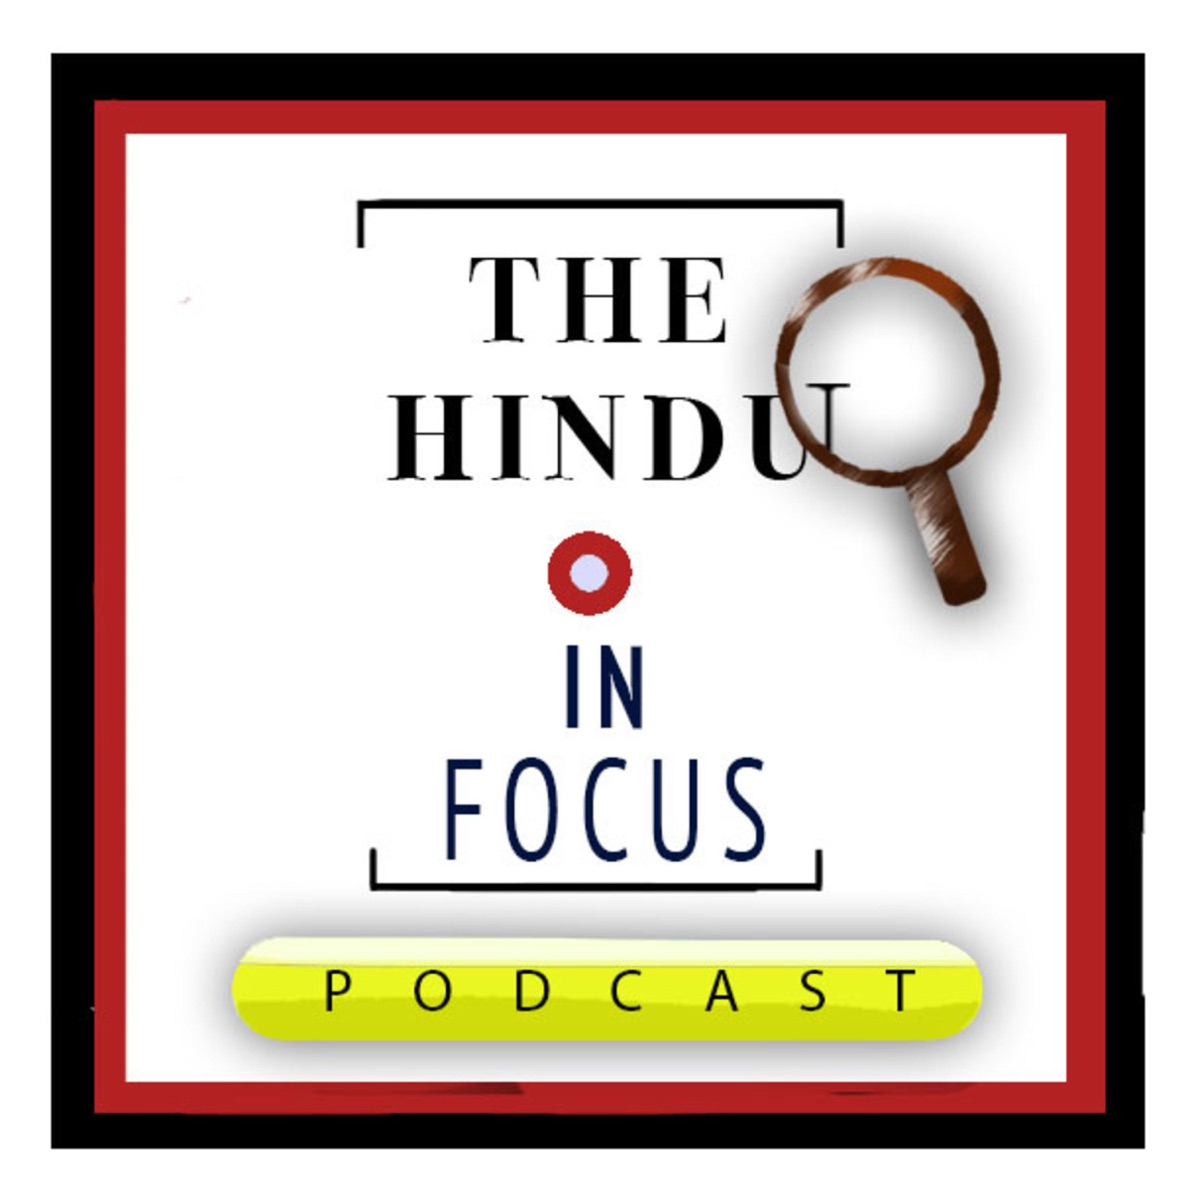 In Focus by The Hindu